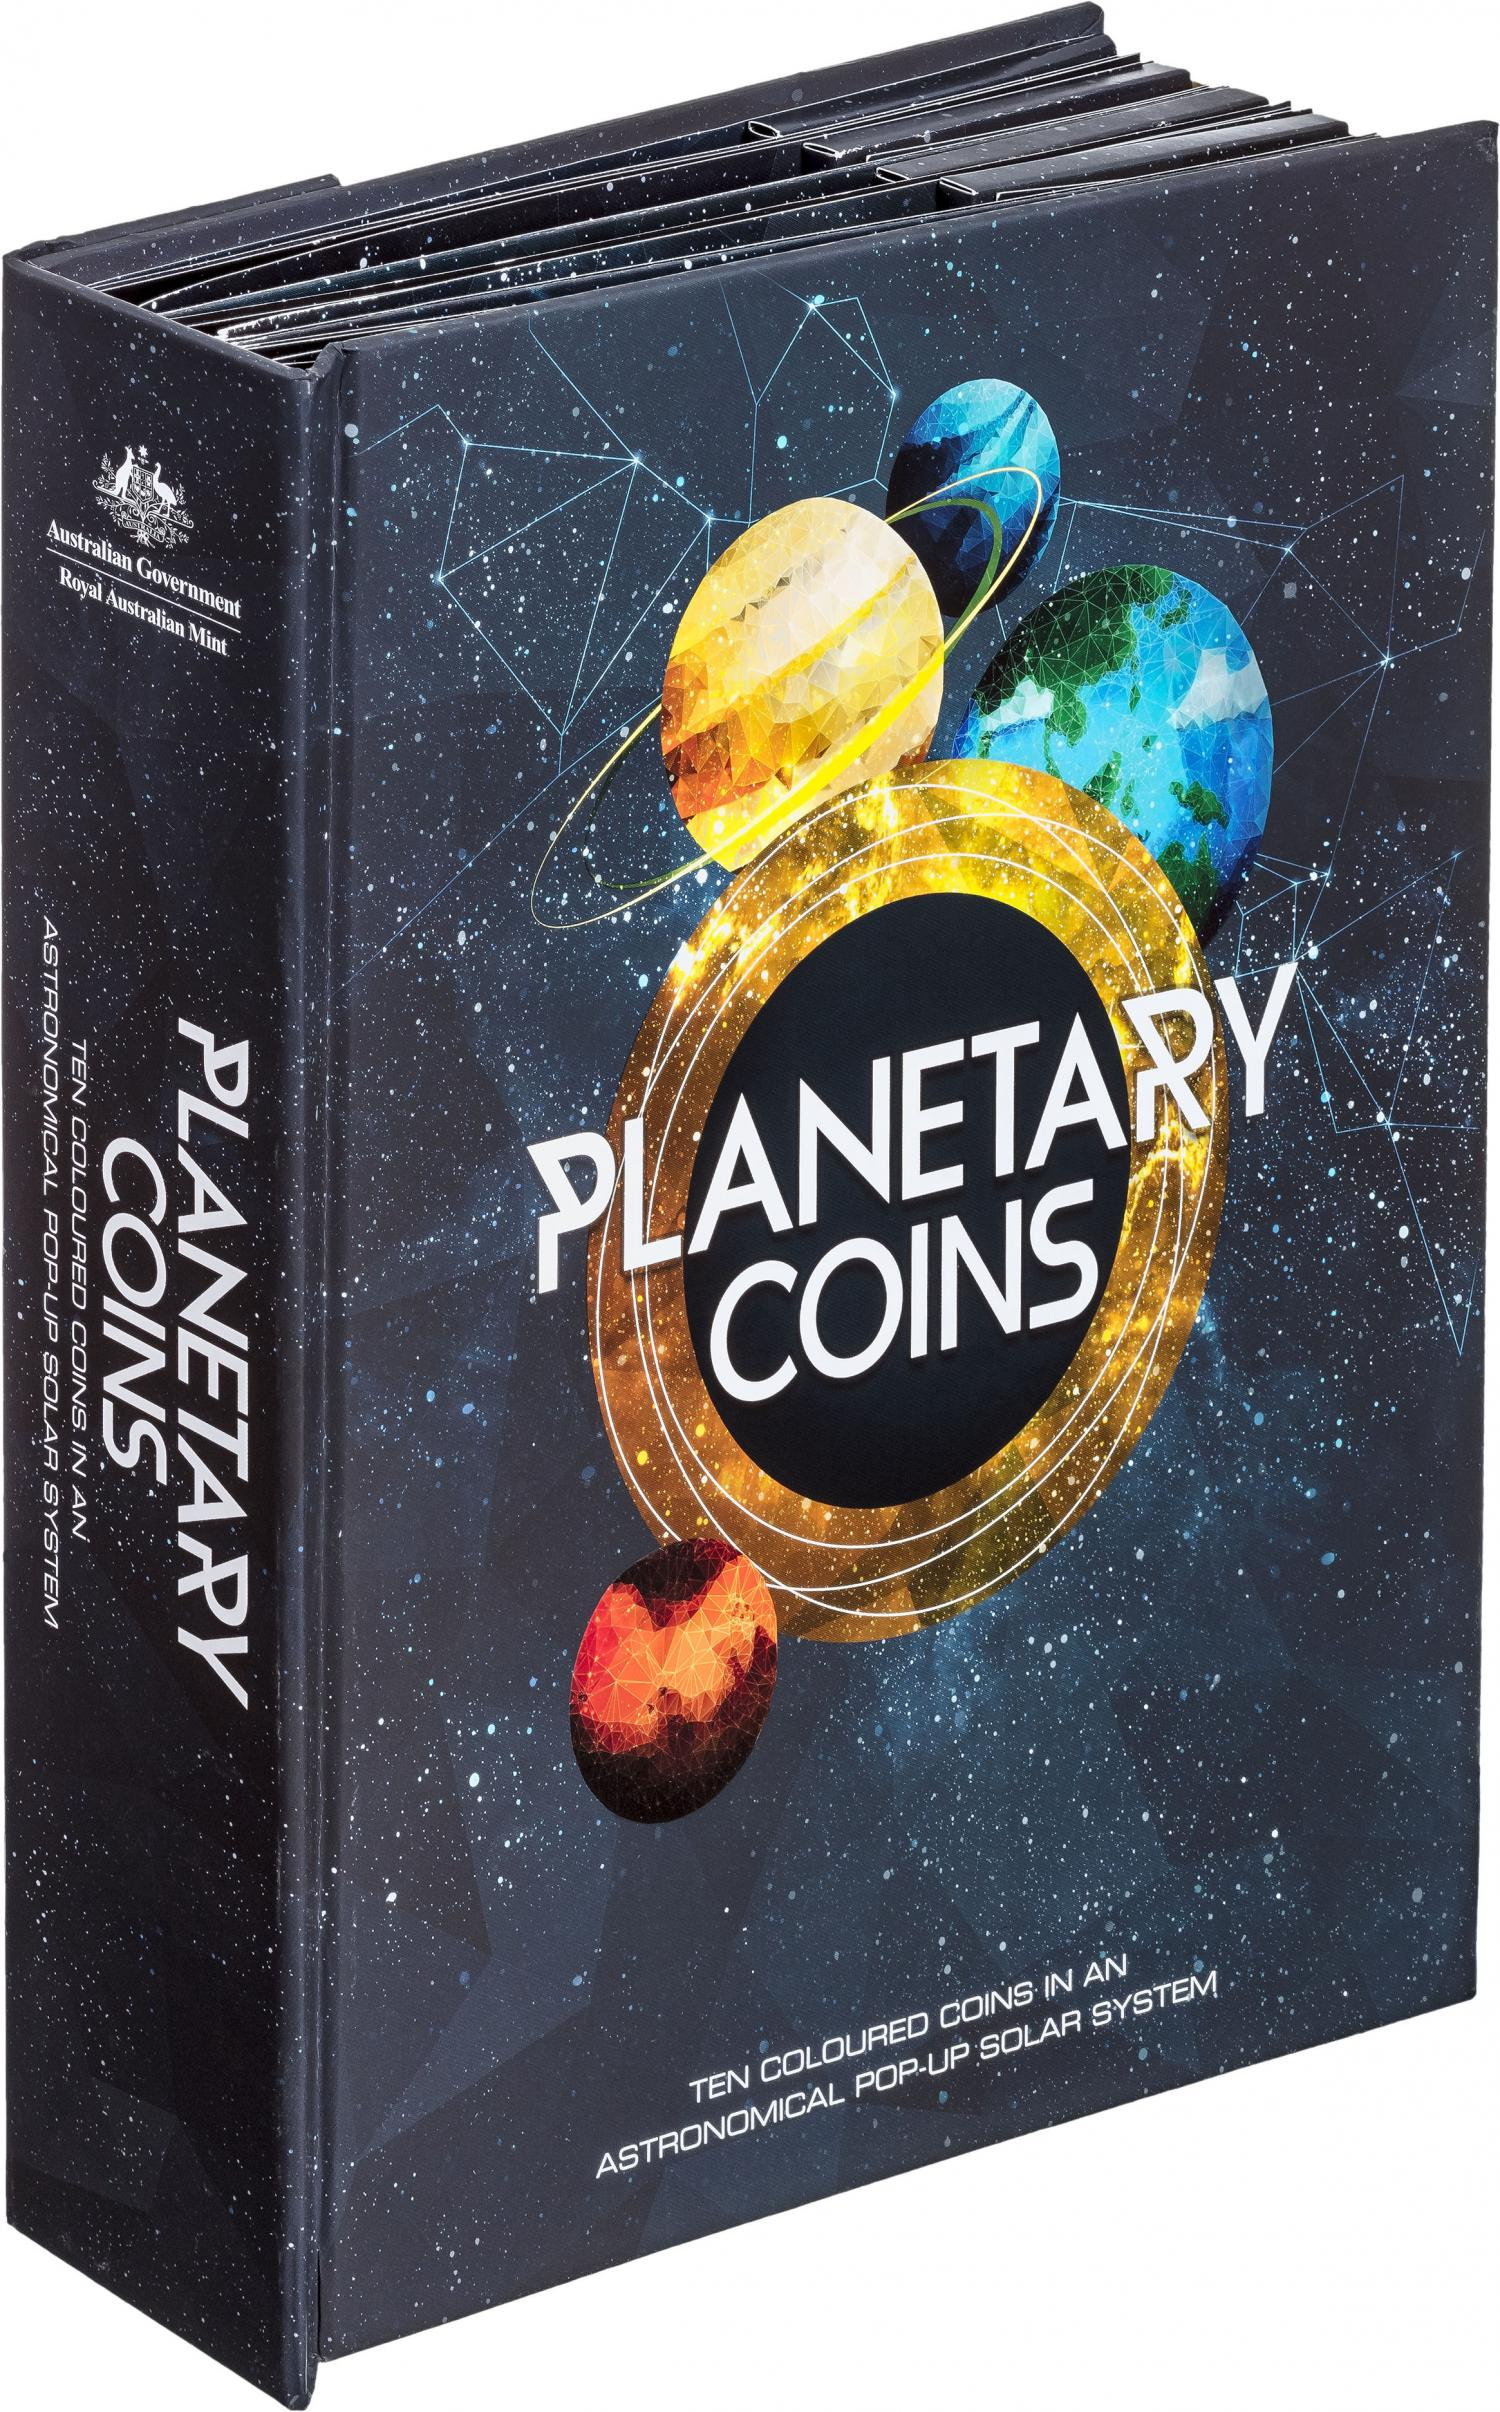 Thumbnail for 2017 Planetary Coin Set - Set of 10 Coloured Uncirculated Coins in Pop up Album